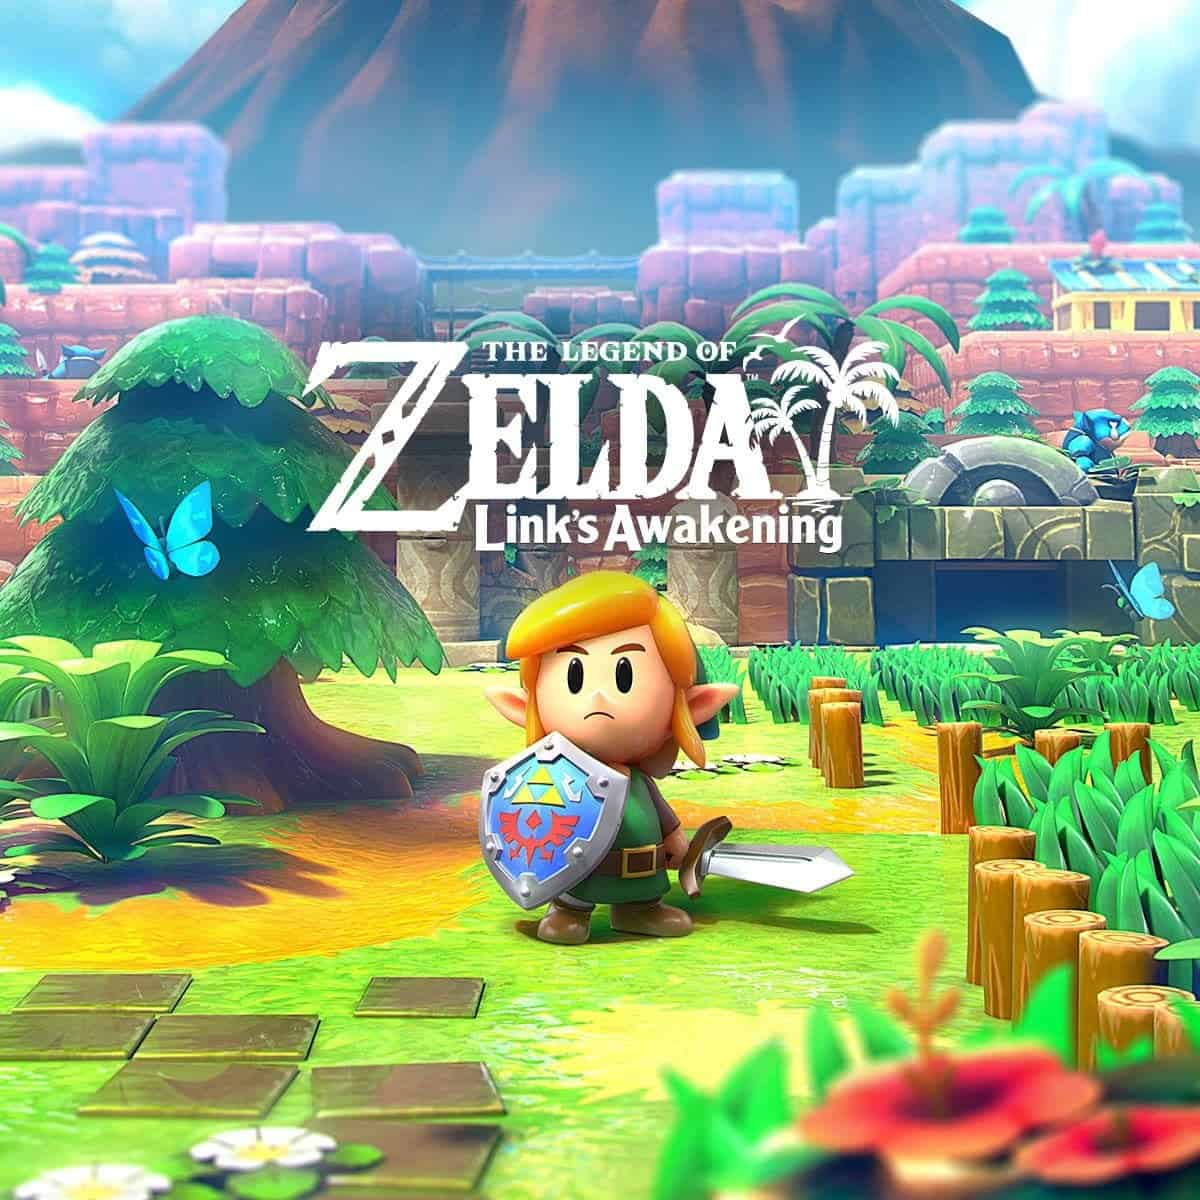 The Legend of Zelda Link's Awakening Review - Mixed Grill - Mixed Grill